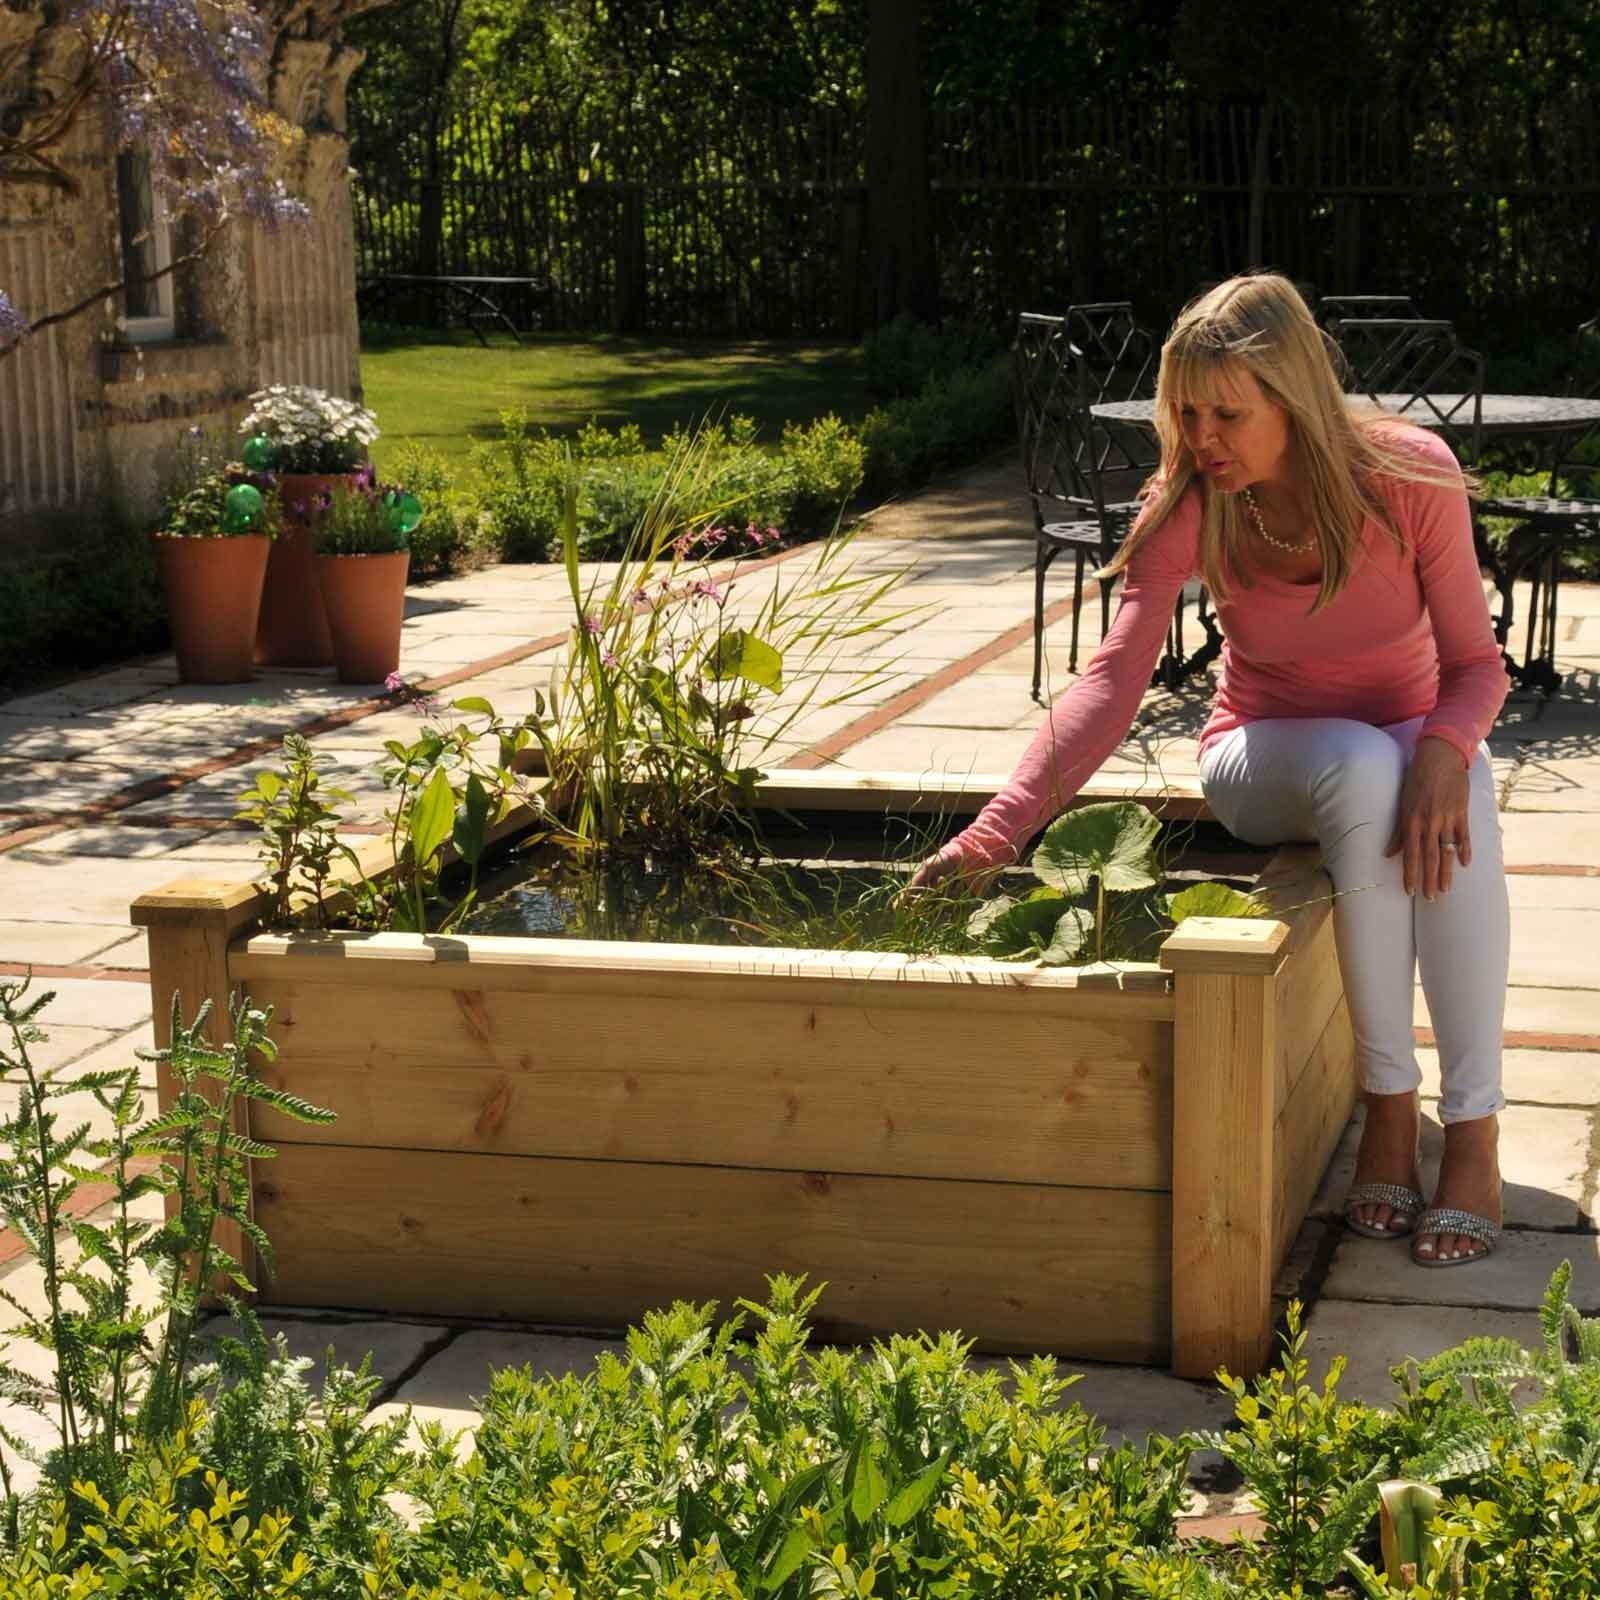 Our Raised Pond Kits, Based On Our Popular Superior Wooden Raised Beds, Allow You To Create An Instant Garden Pond, Which Looks Great In The Garden Or